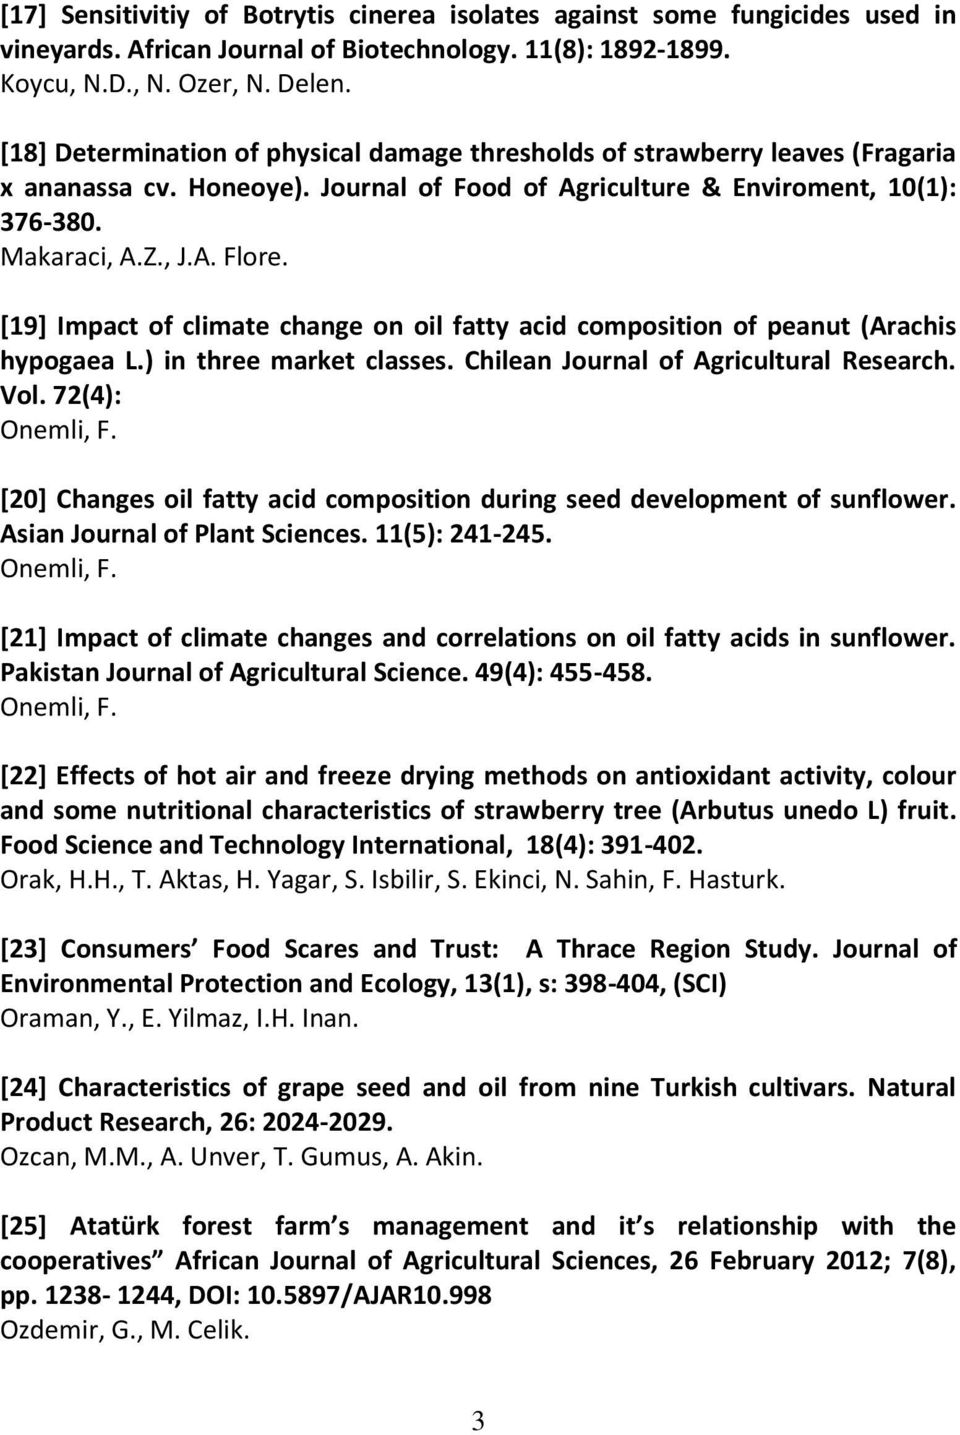 [19] Impact of climate change on oil fatty acid composition of peanut (Arachis hypogaea L.) in three market classes. Chilean Journal of Agricultural Research. Vol. 72(4): Onemli, F.